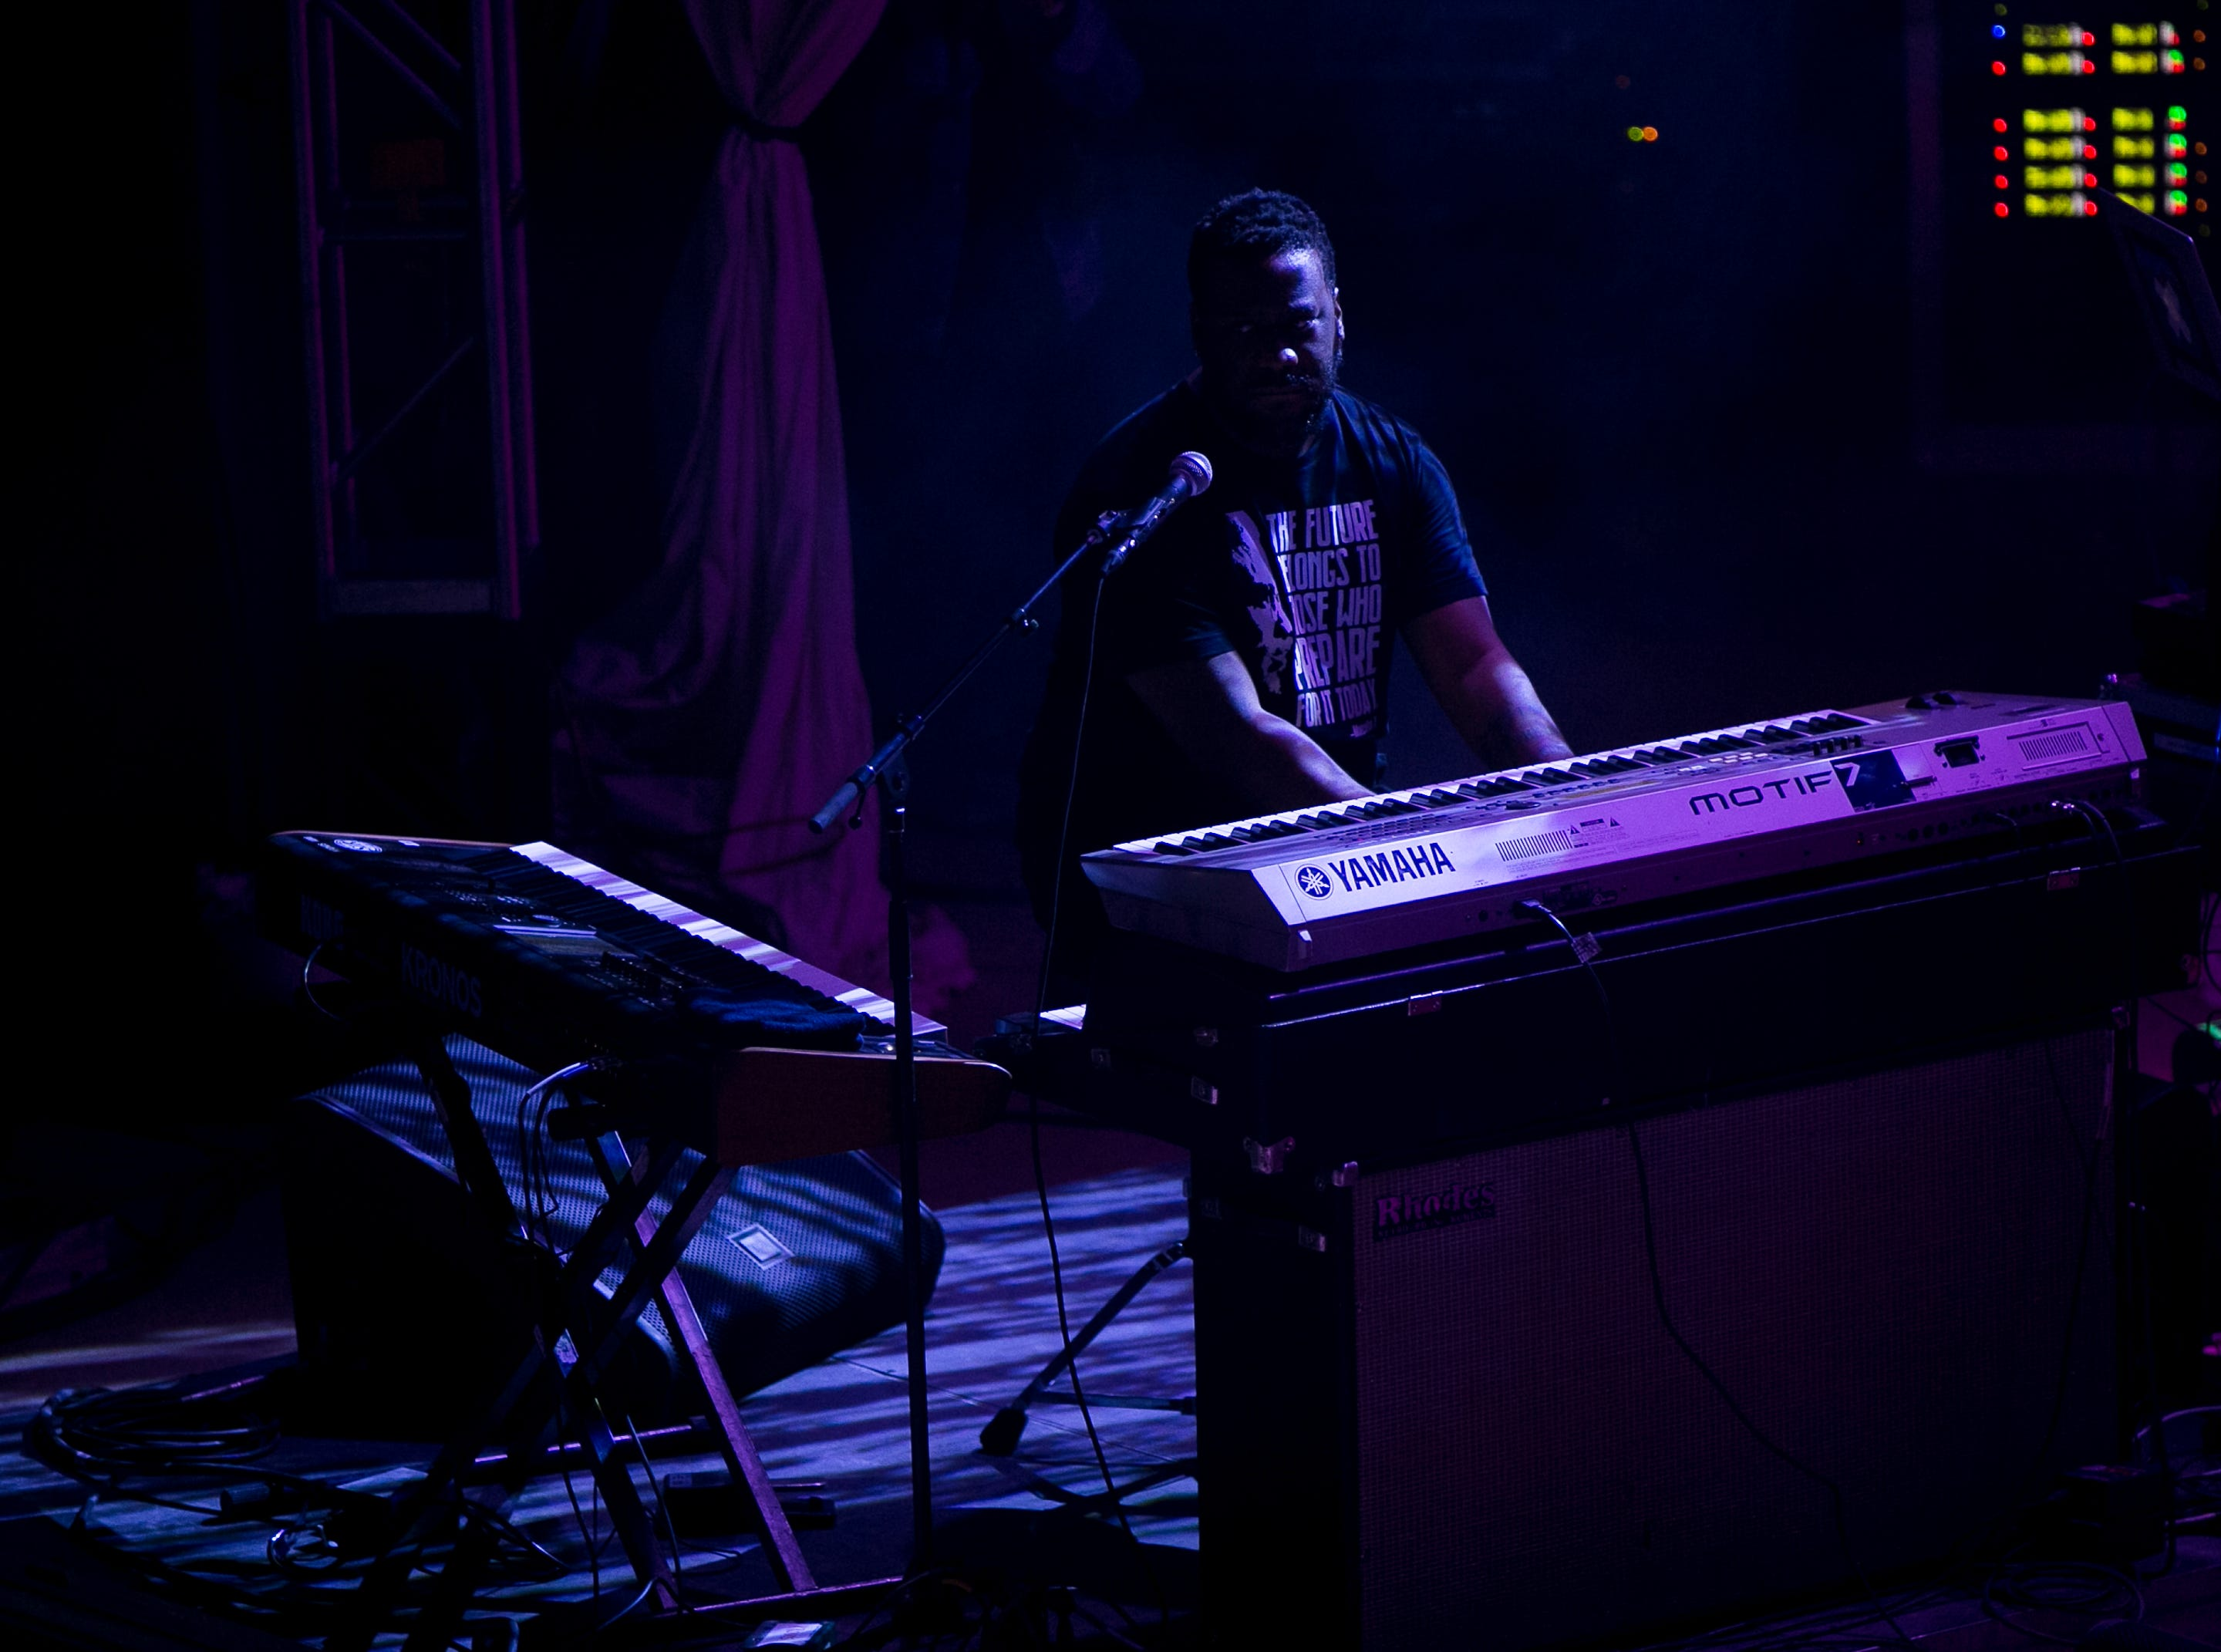 Robert Glasper performs at the 2019 FORM Arcosanti music festival near Camp Verde, Arizona, on May 12, 2019.